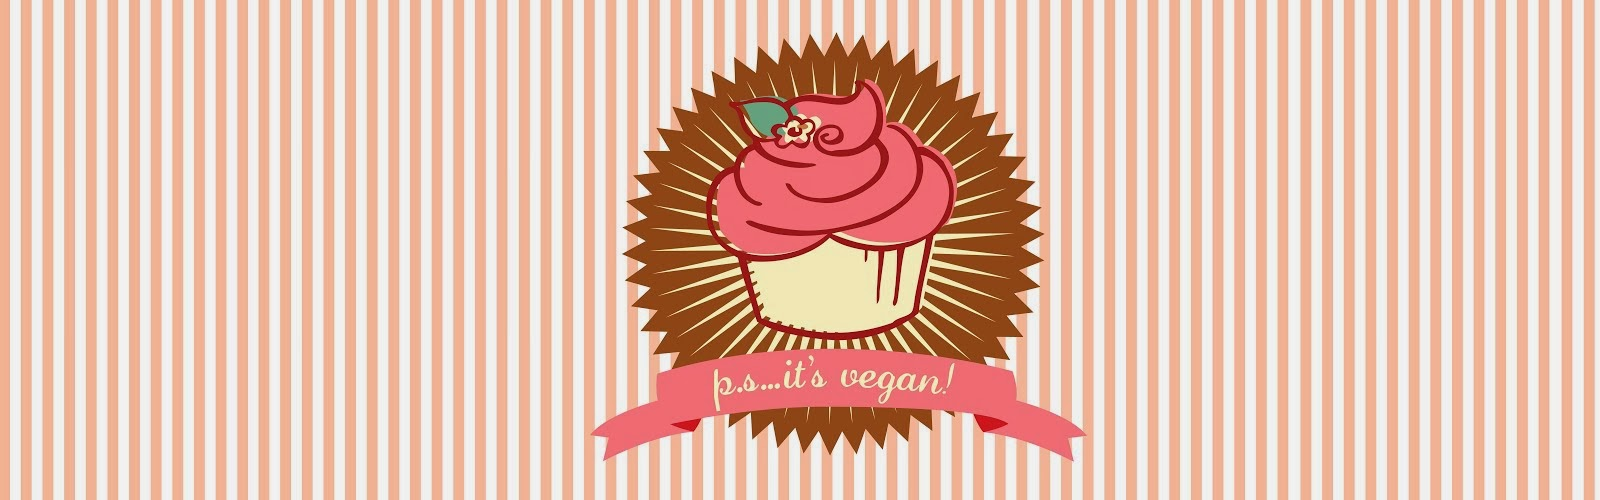 P.s...it's vegan!